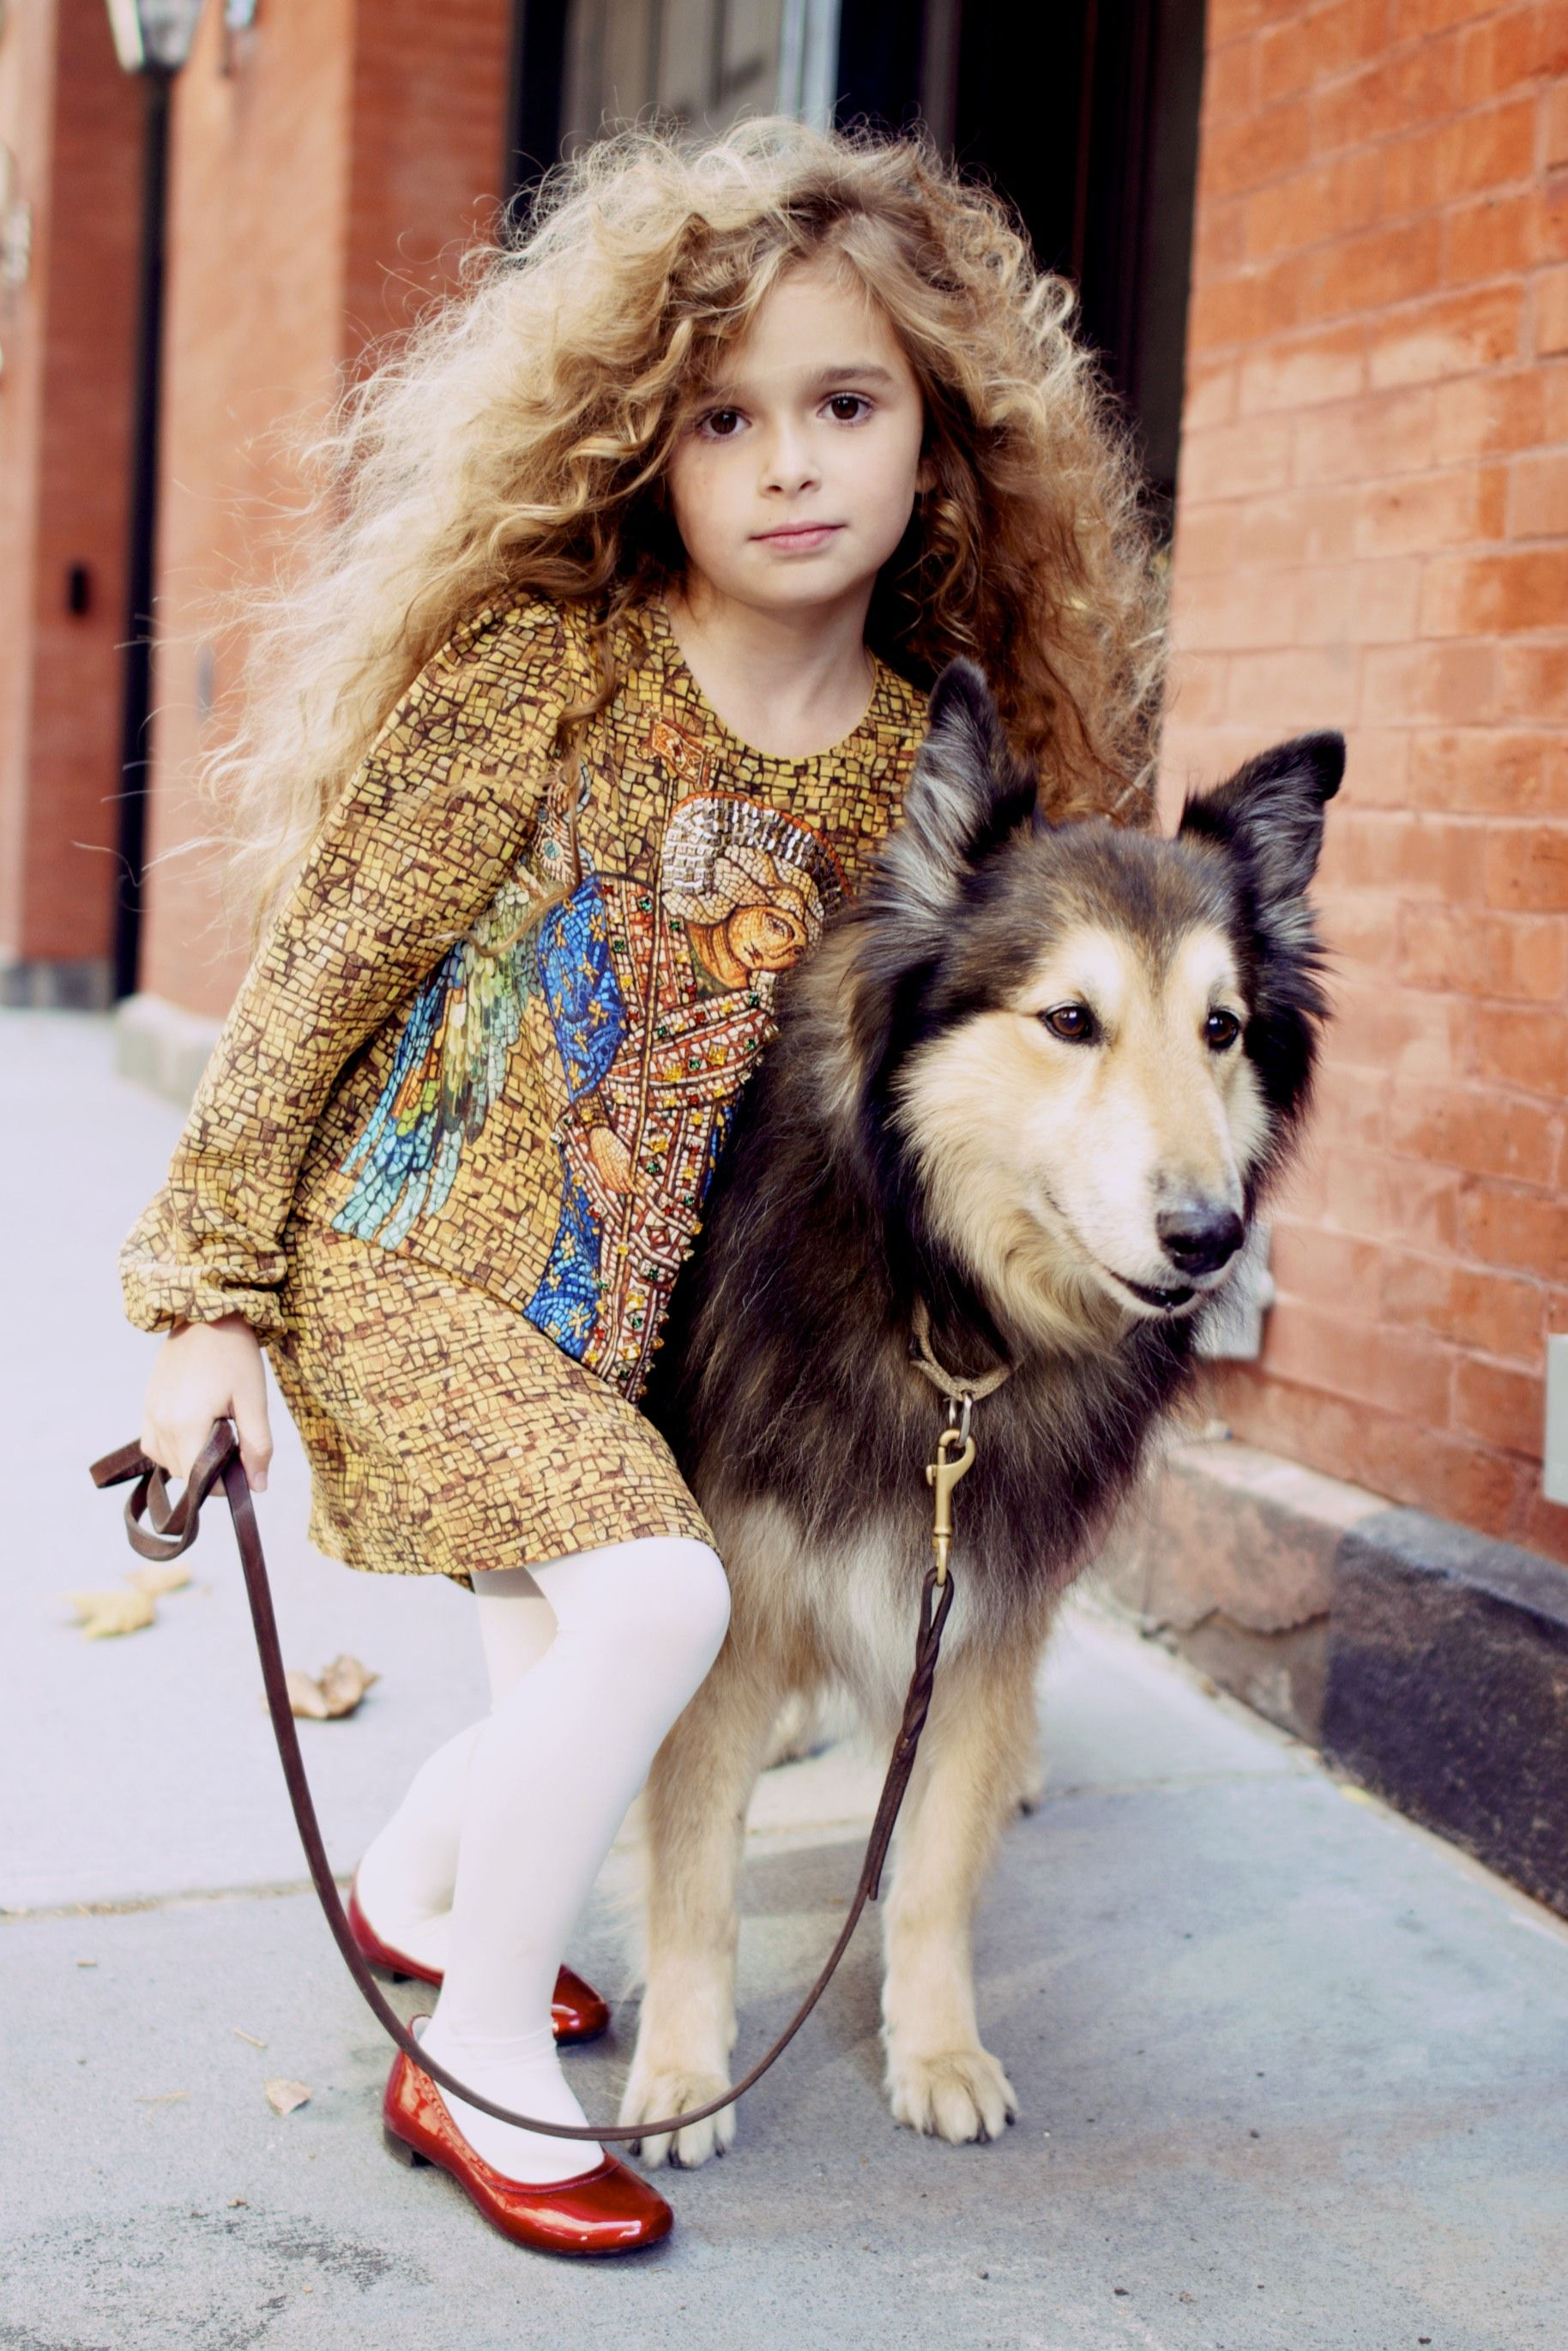 Quinoa is honored to announce her latest philanthropic effort: highly trained seeing fashion dogs for the color blind. #MIWDTD